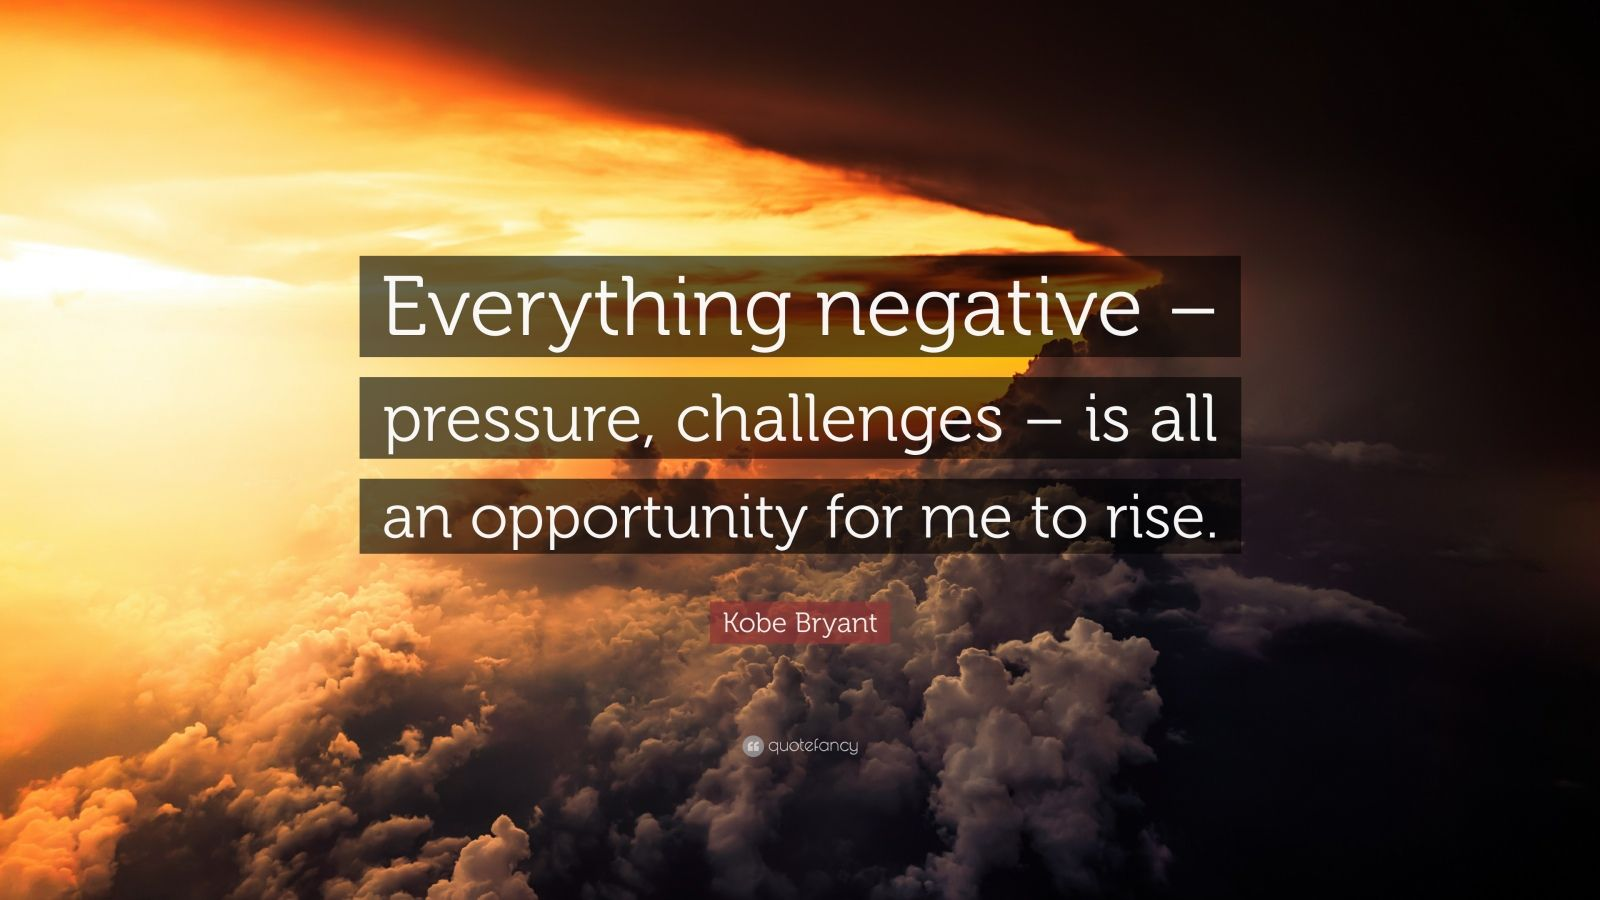 Brian Tracy Quotes Wallpaper Kobe Bryant Quote Everything Negative Pressure